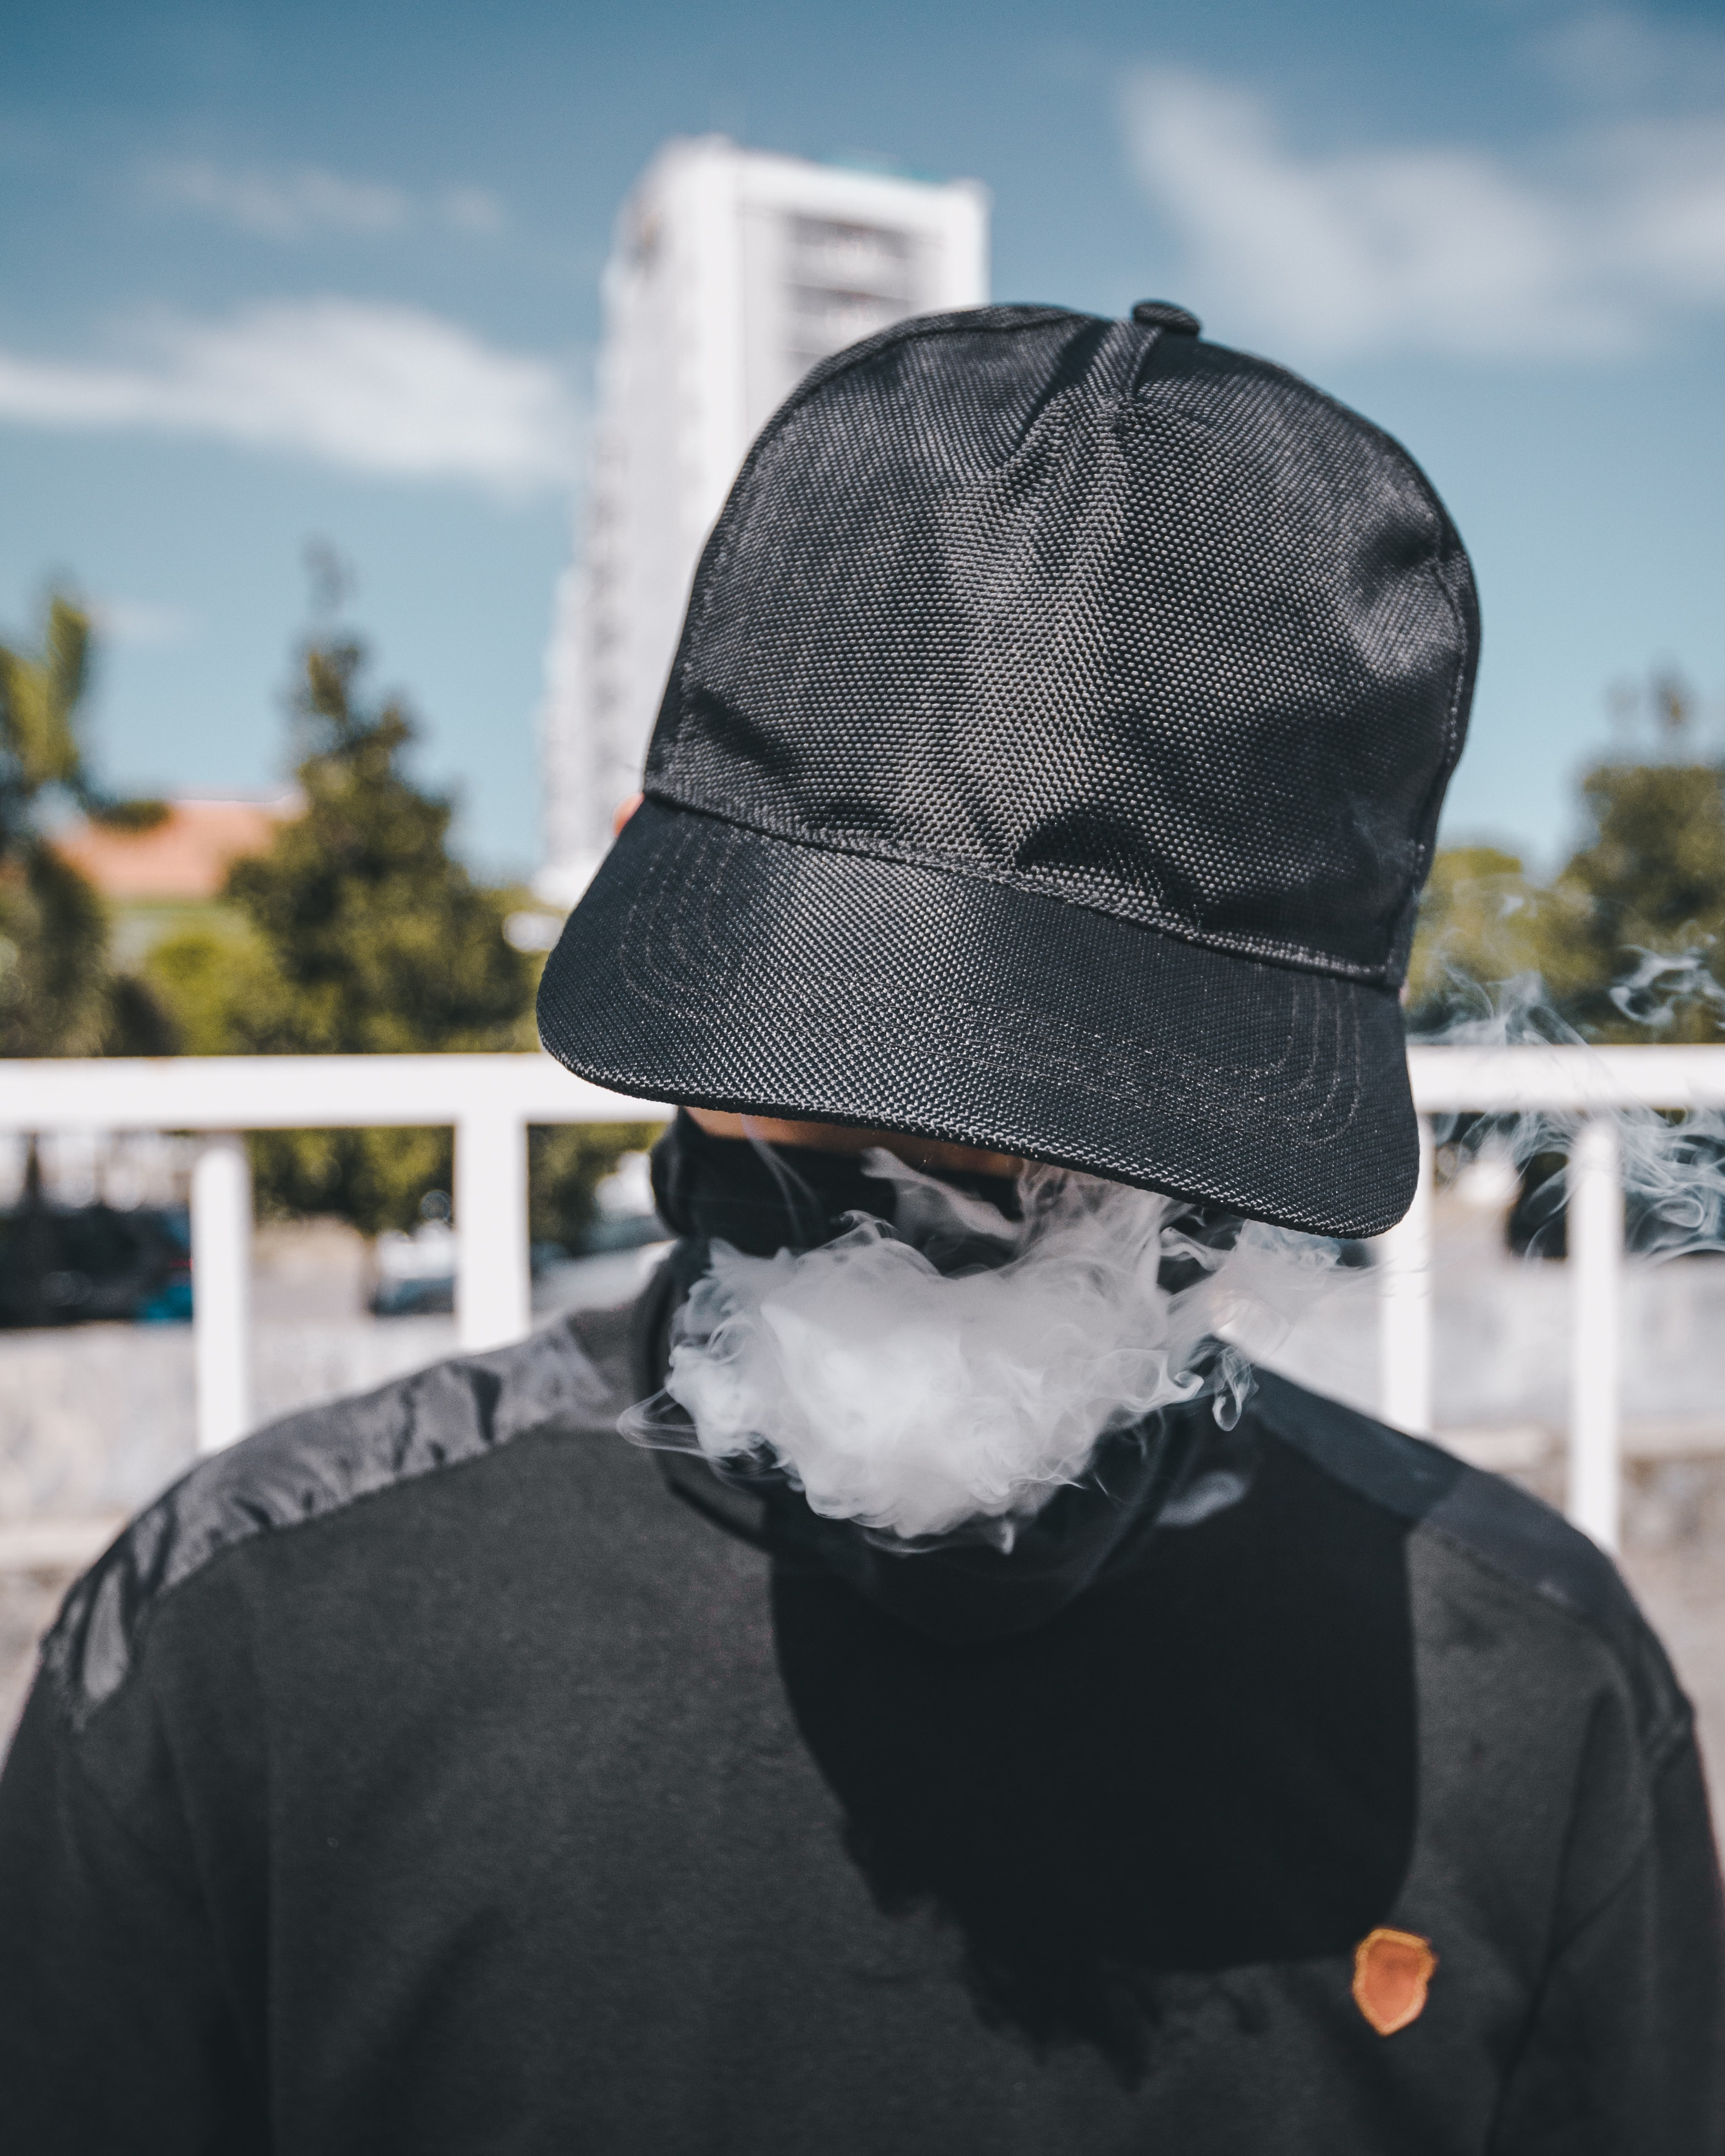 A person in a black baseball cap and covered face exhales smoke in Central Jakarta